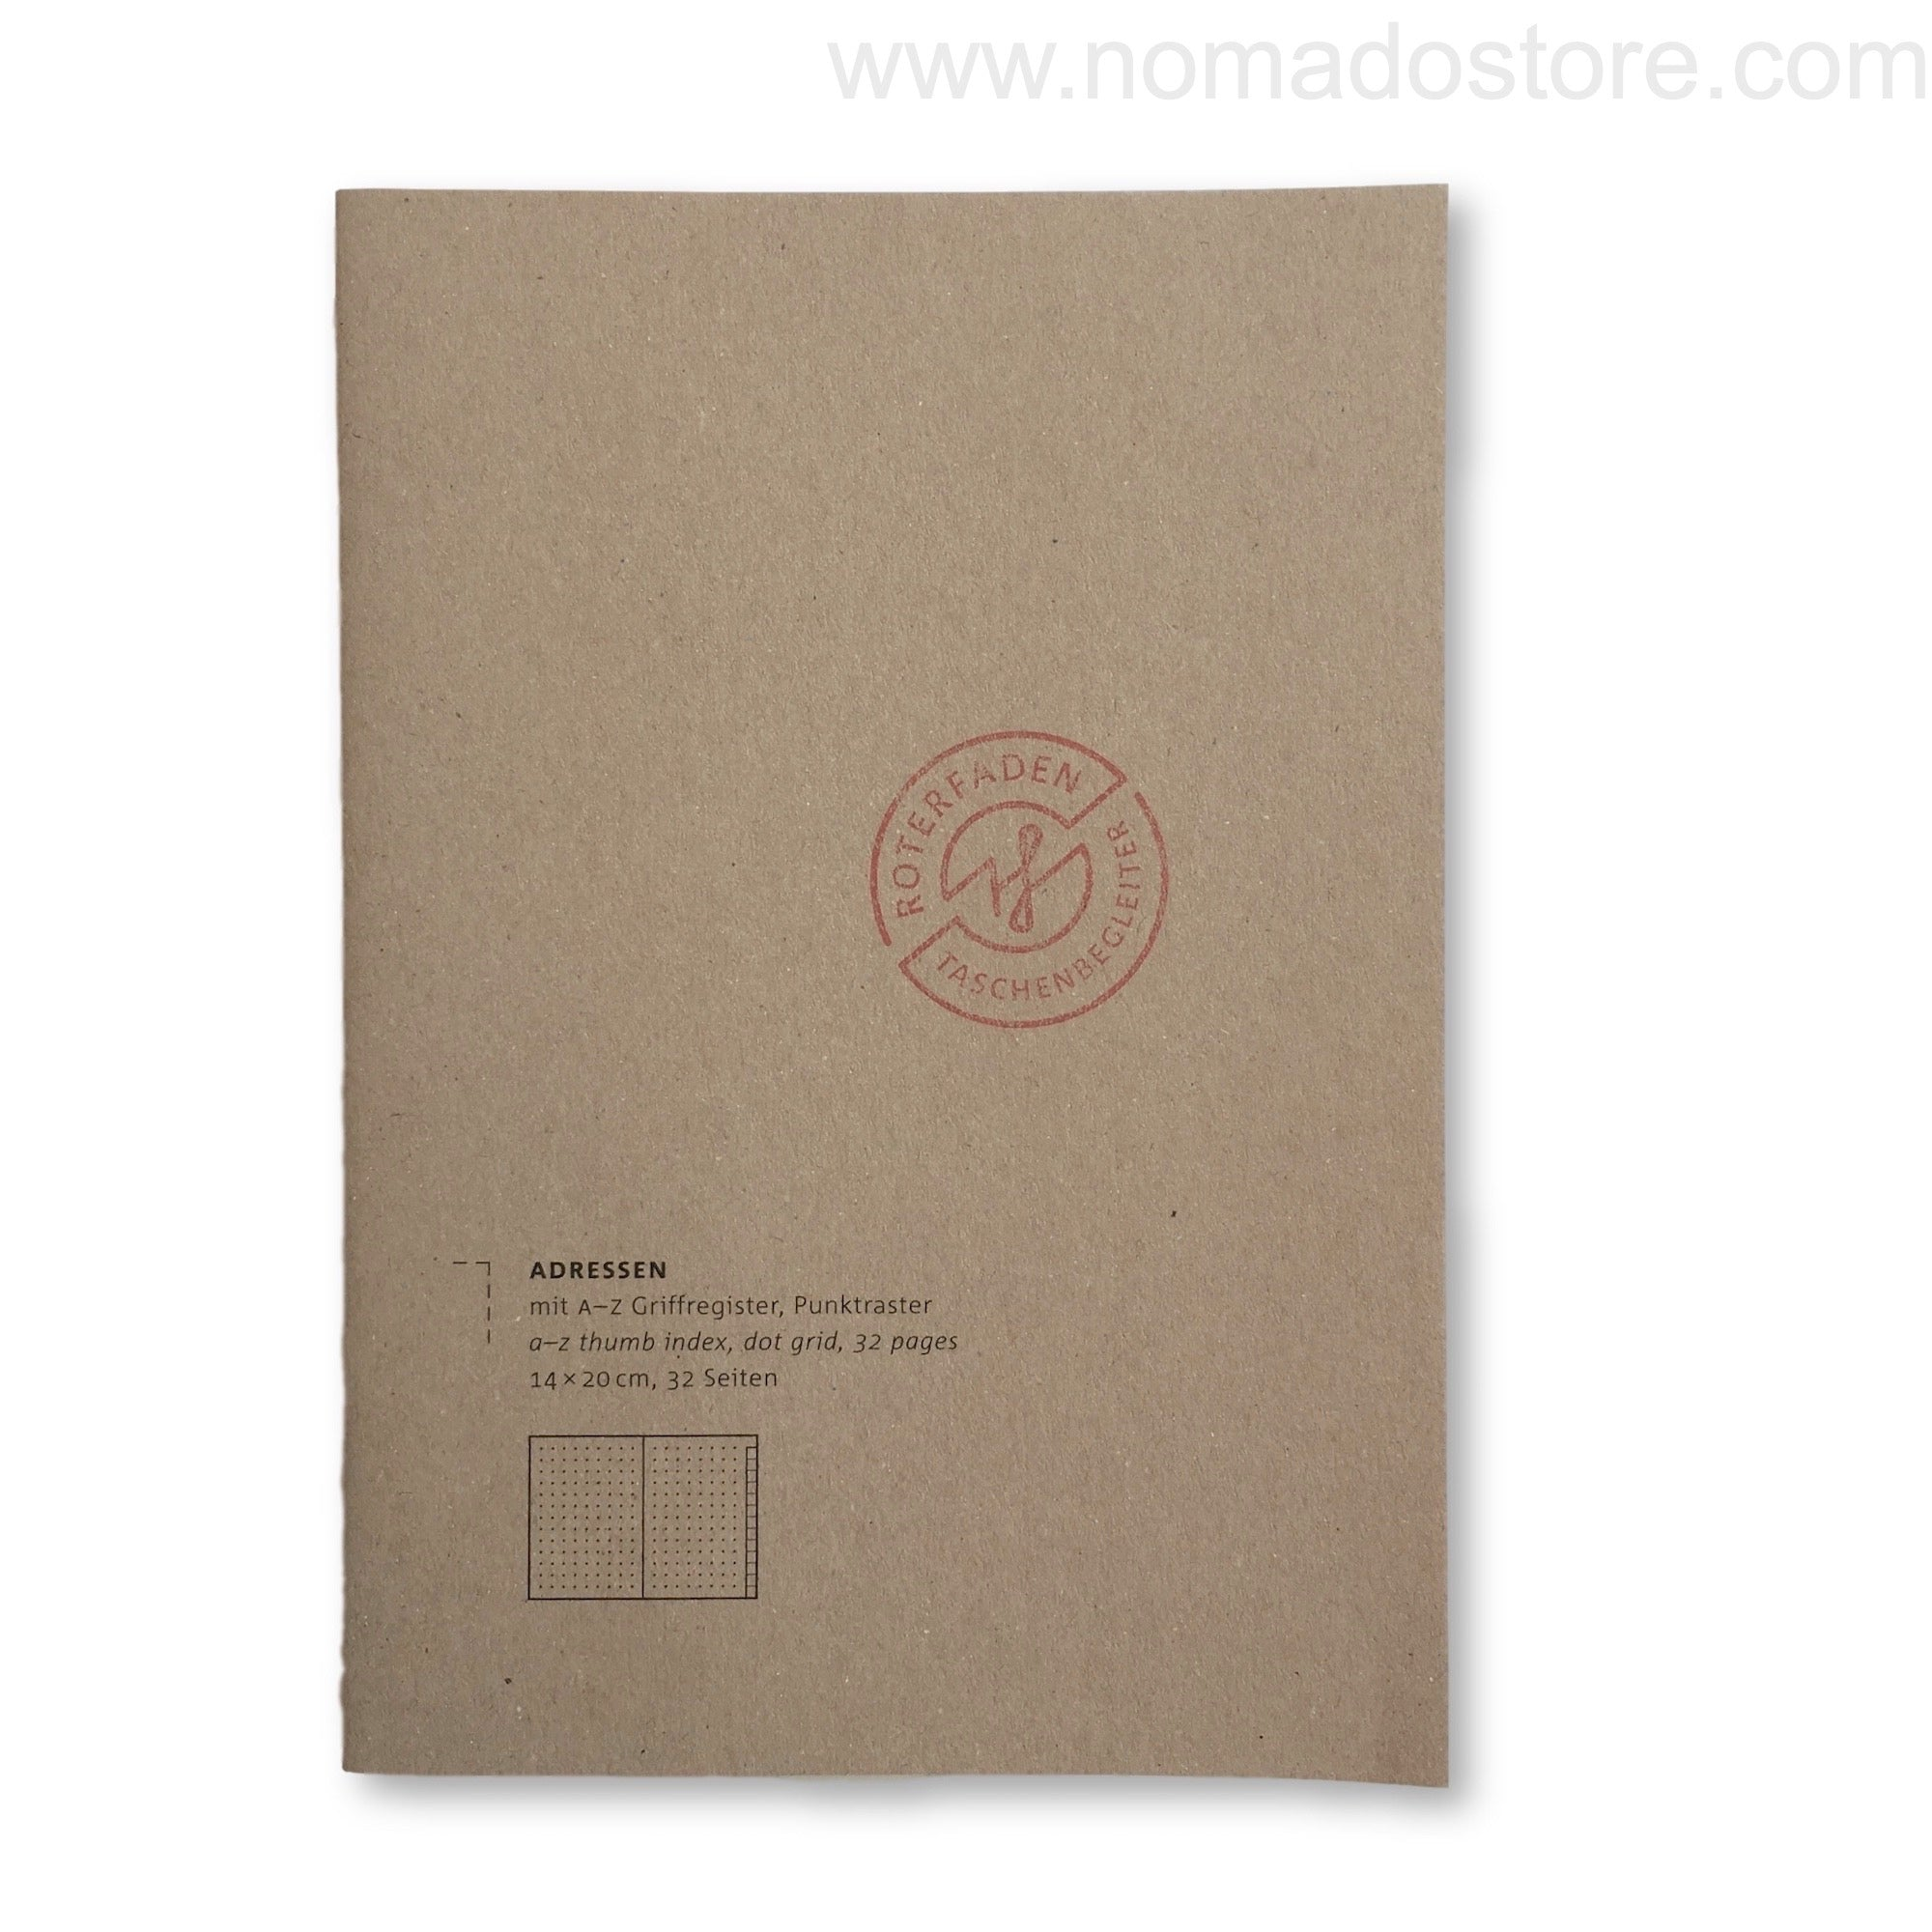 Roterfaden Smaller A5 Address Book (14x20cm) - NOMADO Store